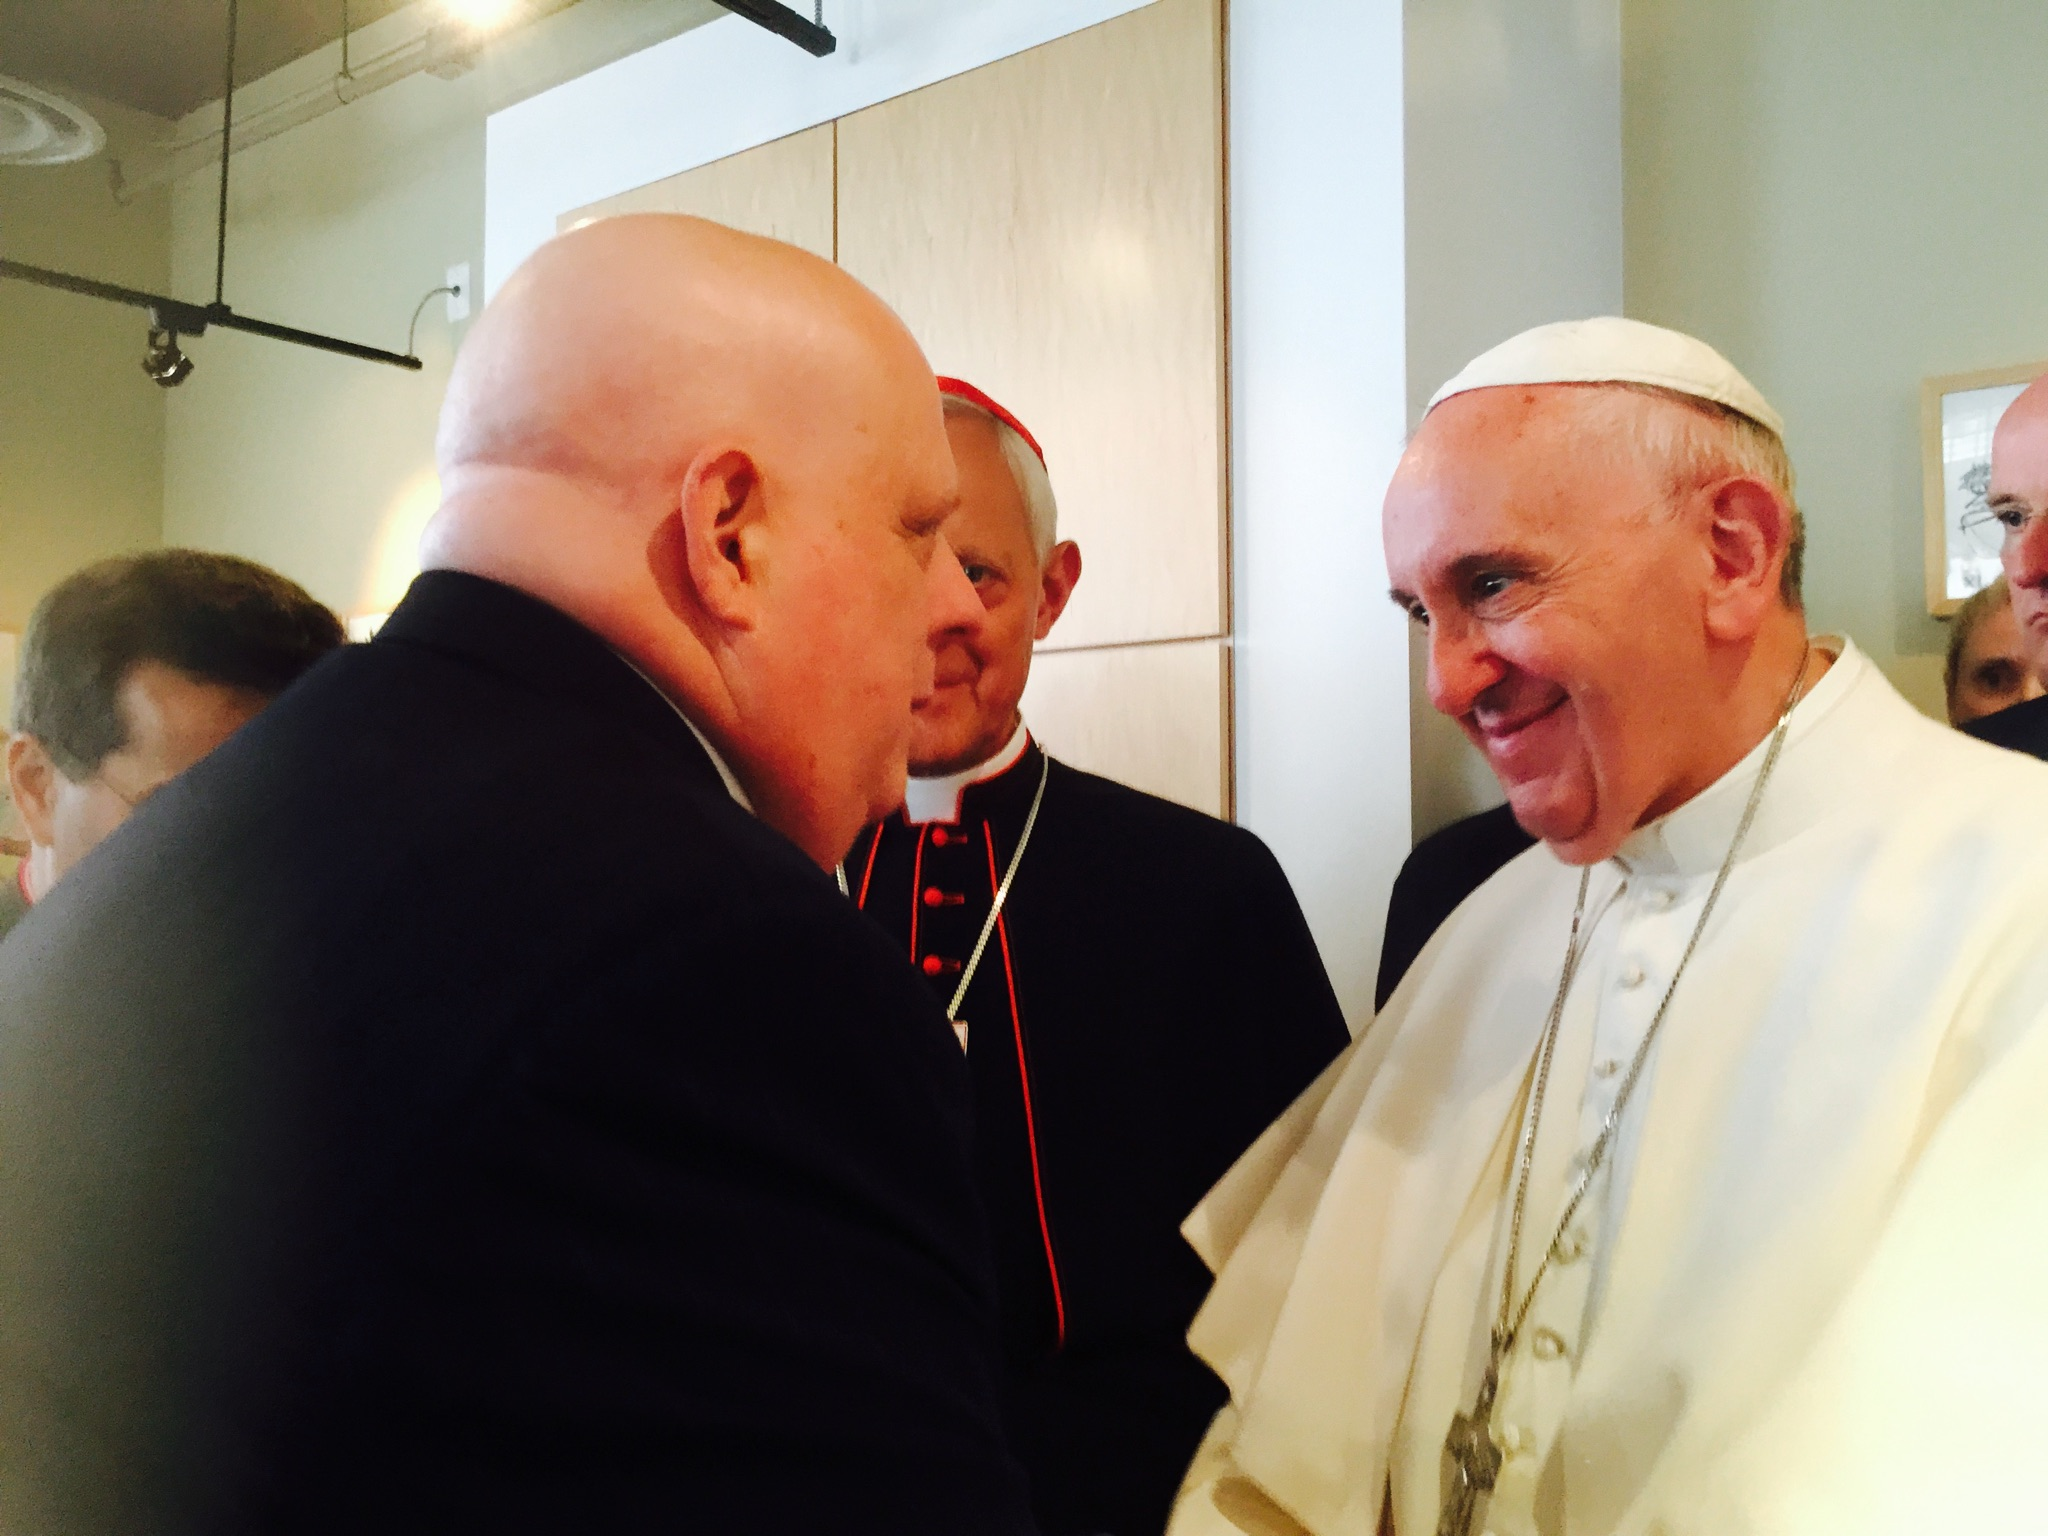 Gov. Hogan opens up about special blessing from Pope Francis